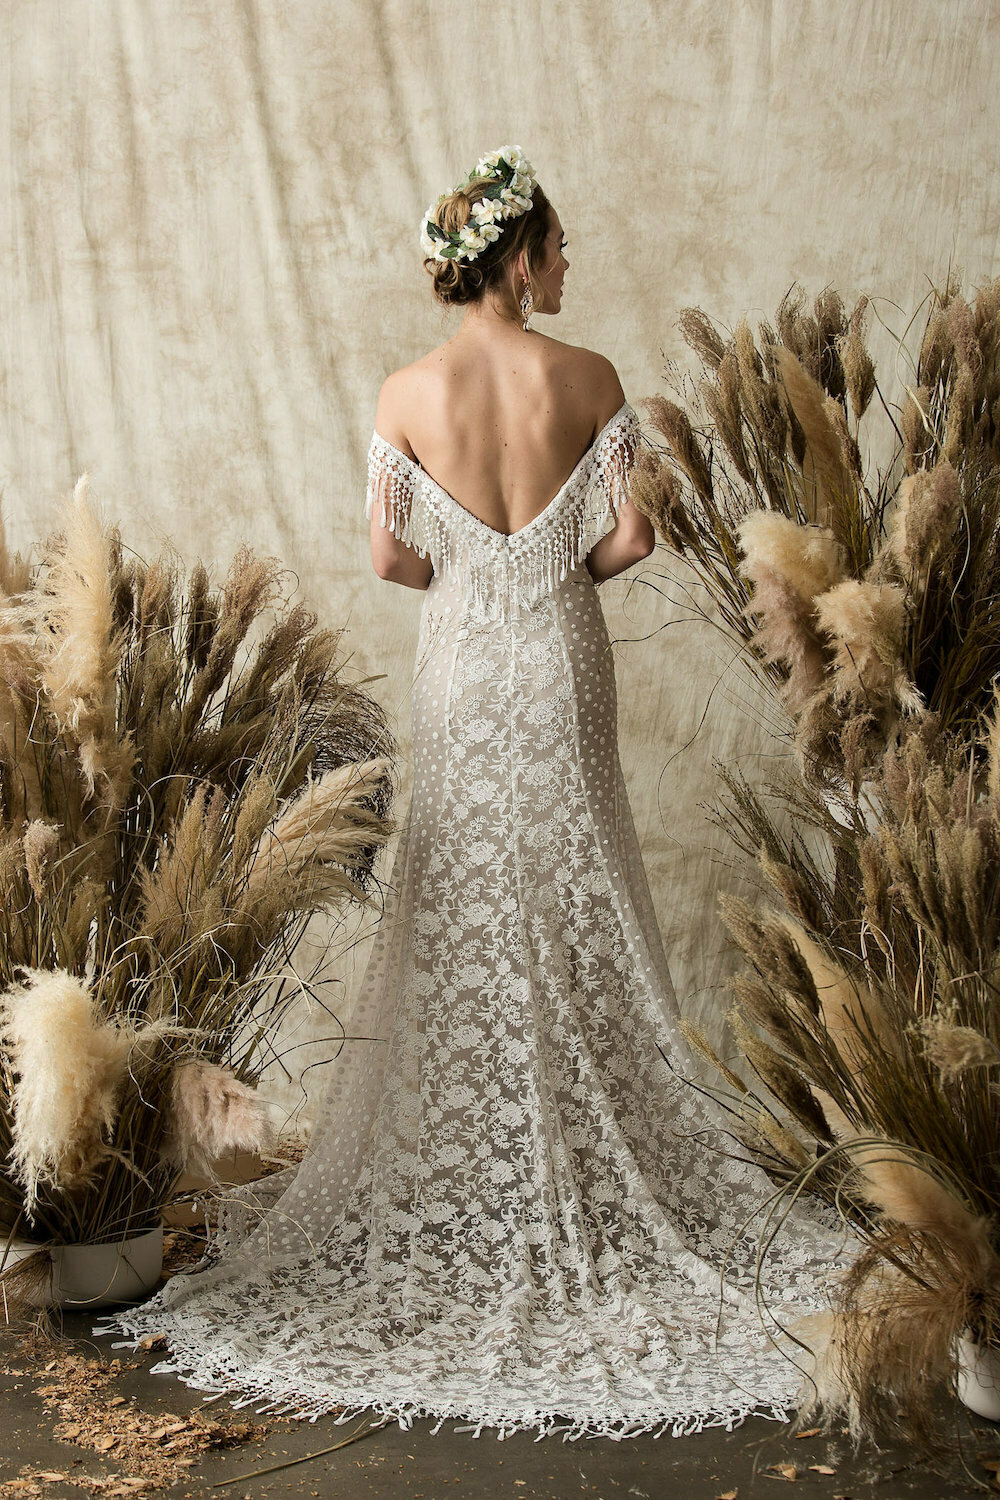 e157ebabe3e heather-backless-bohemian-lace-wedding-dress-with-fringe-